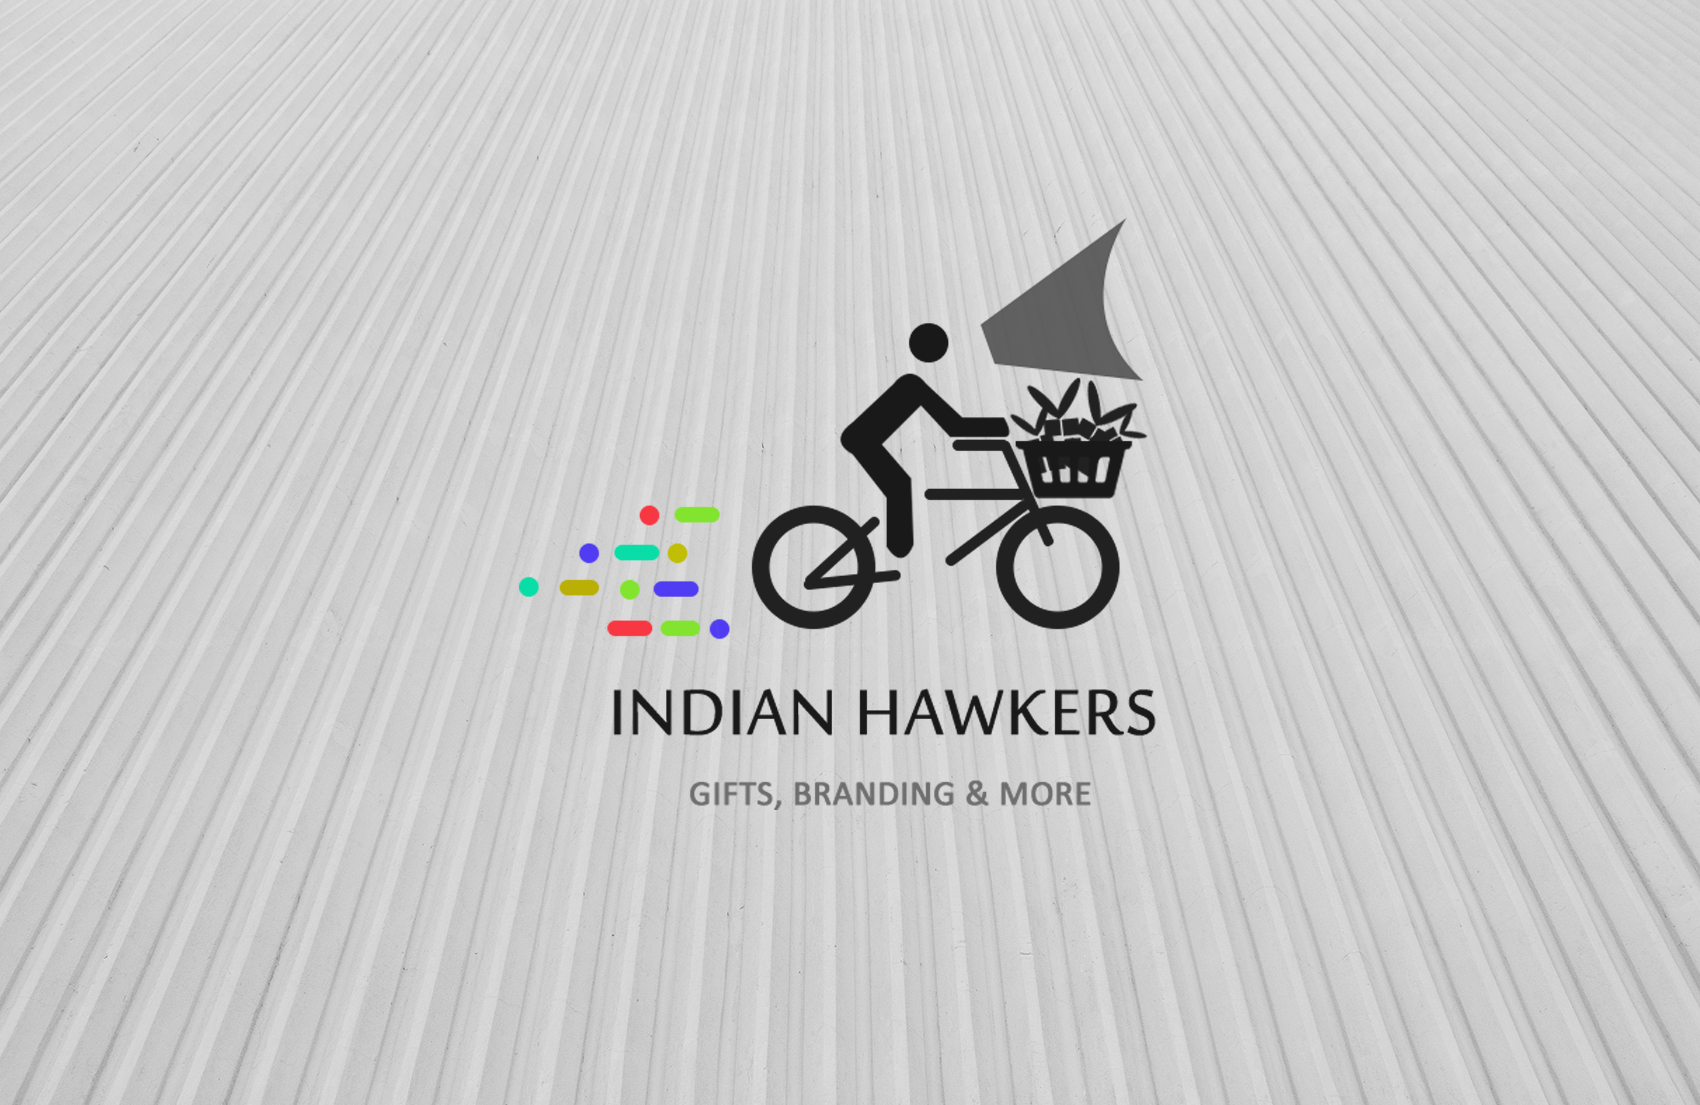 Indian Hawkers